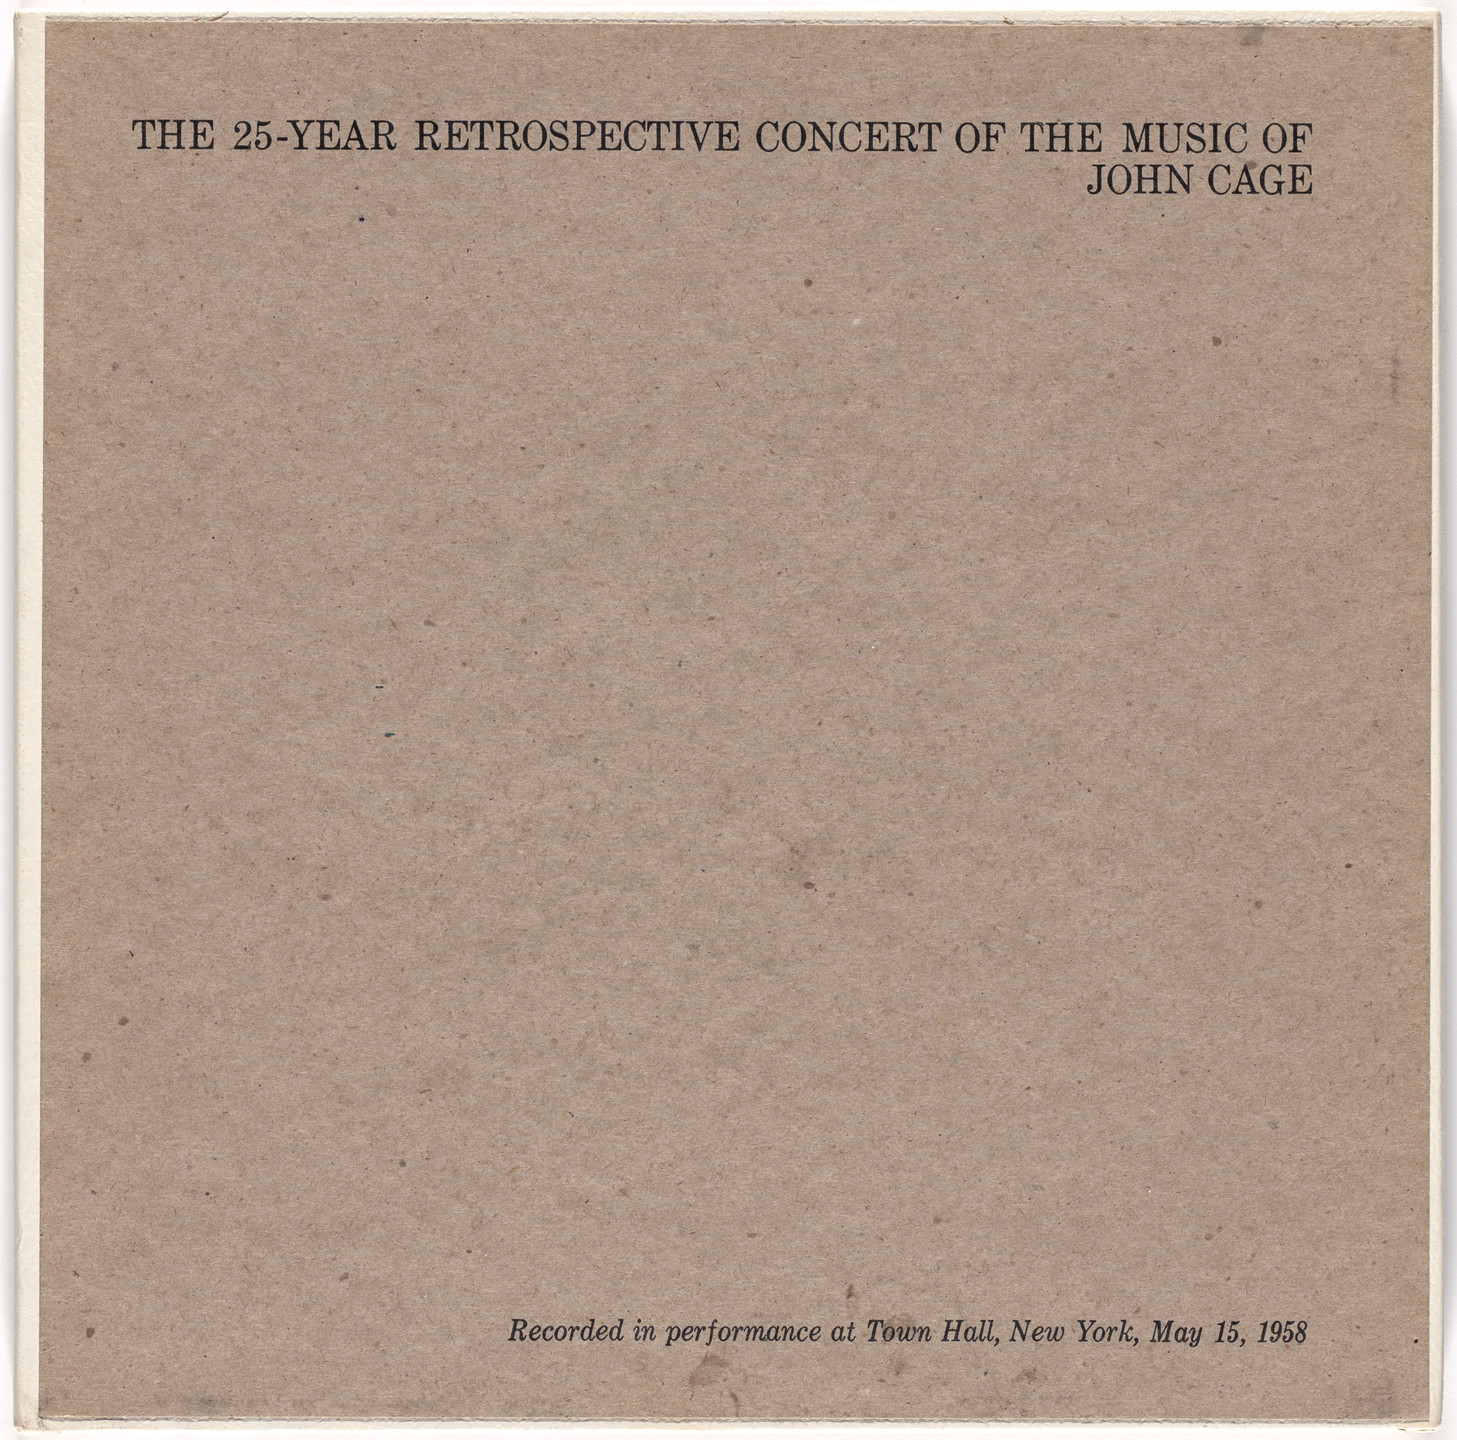 John Cage. The 25-Year Retrospective Concert of the Music of John Cage. 1959